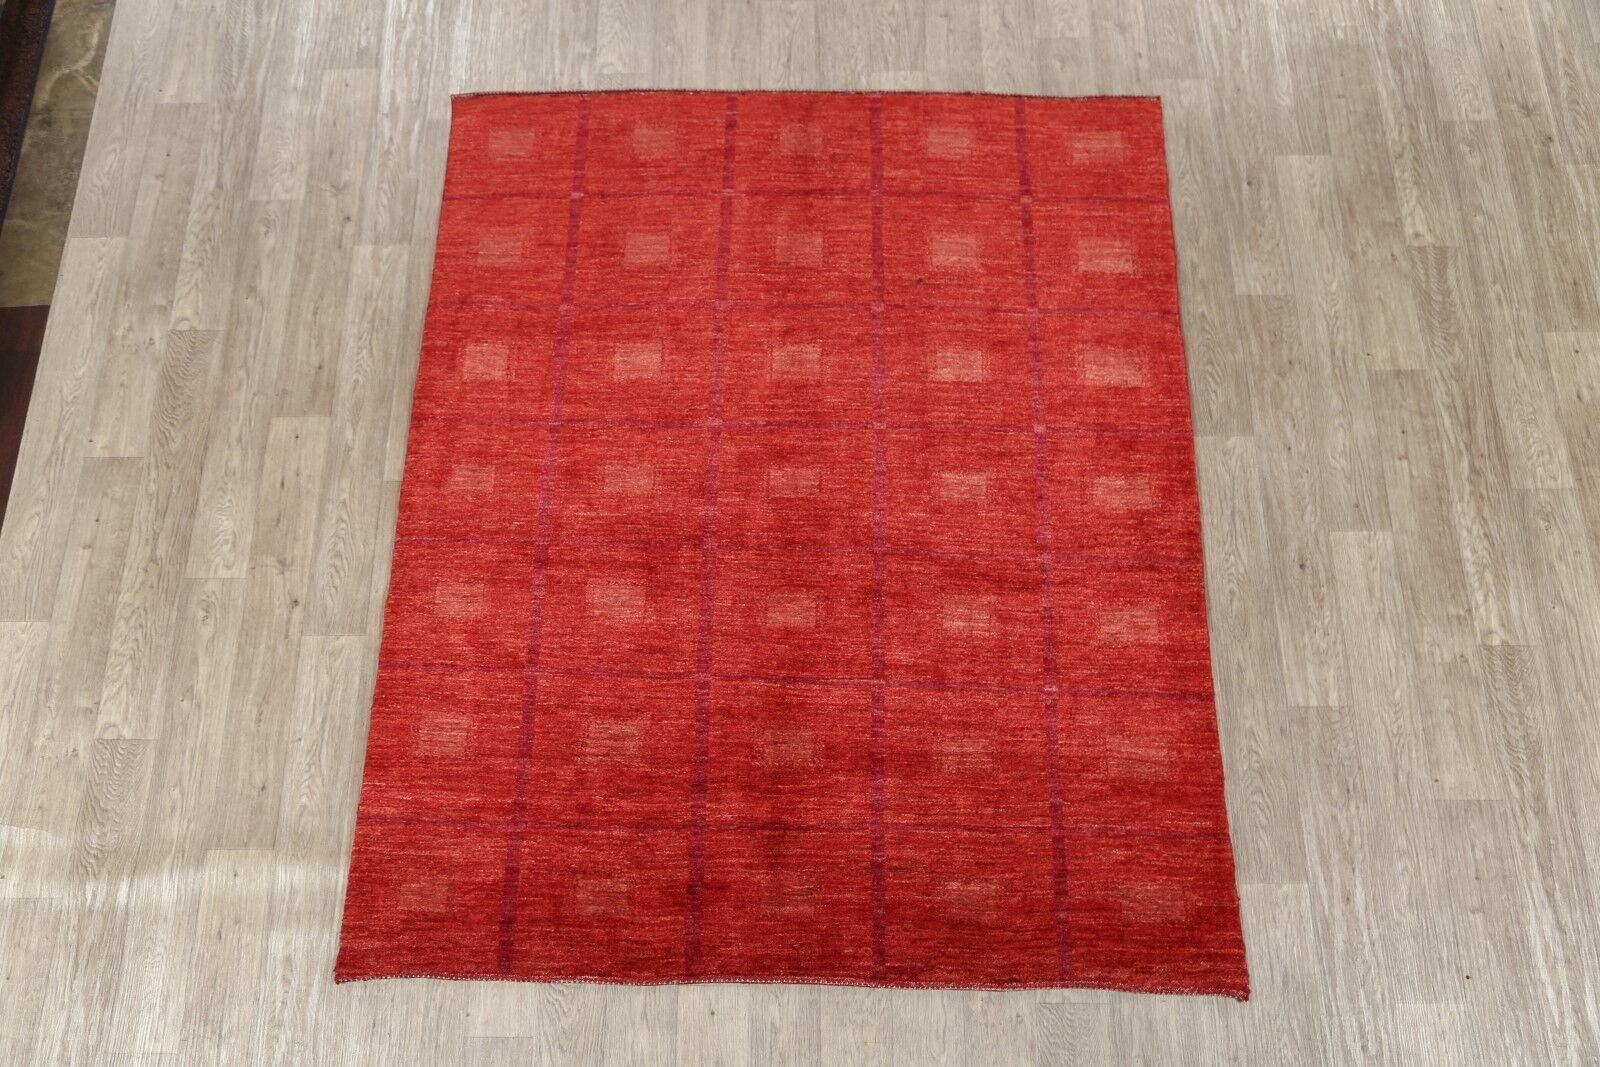 One-of-a-Kind Gabbeh Zolanvari Traditional Persian Modern Hand-Knotted 5'11